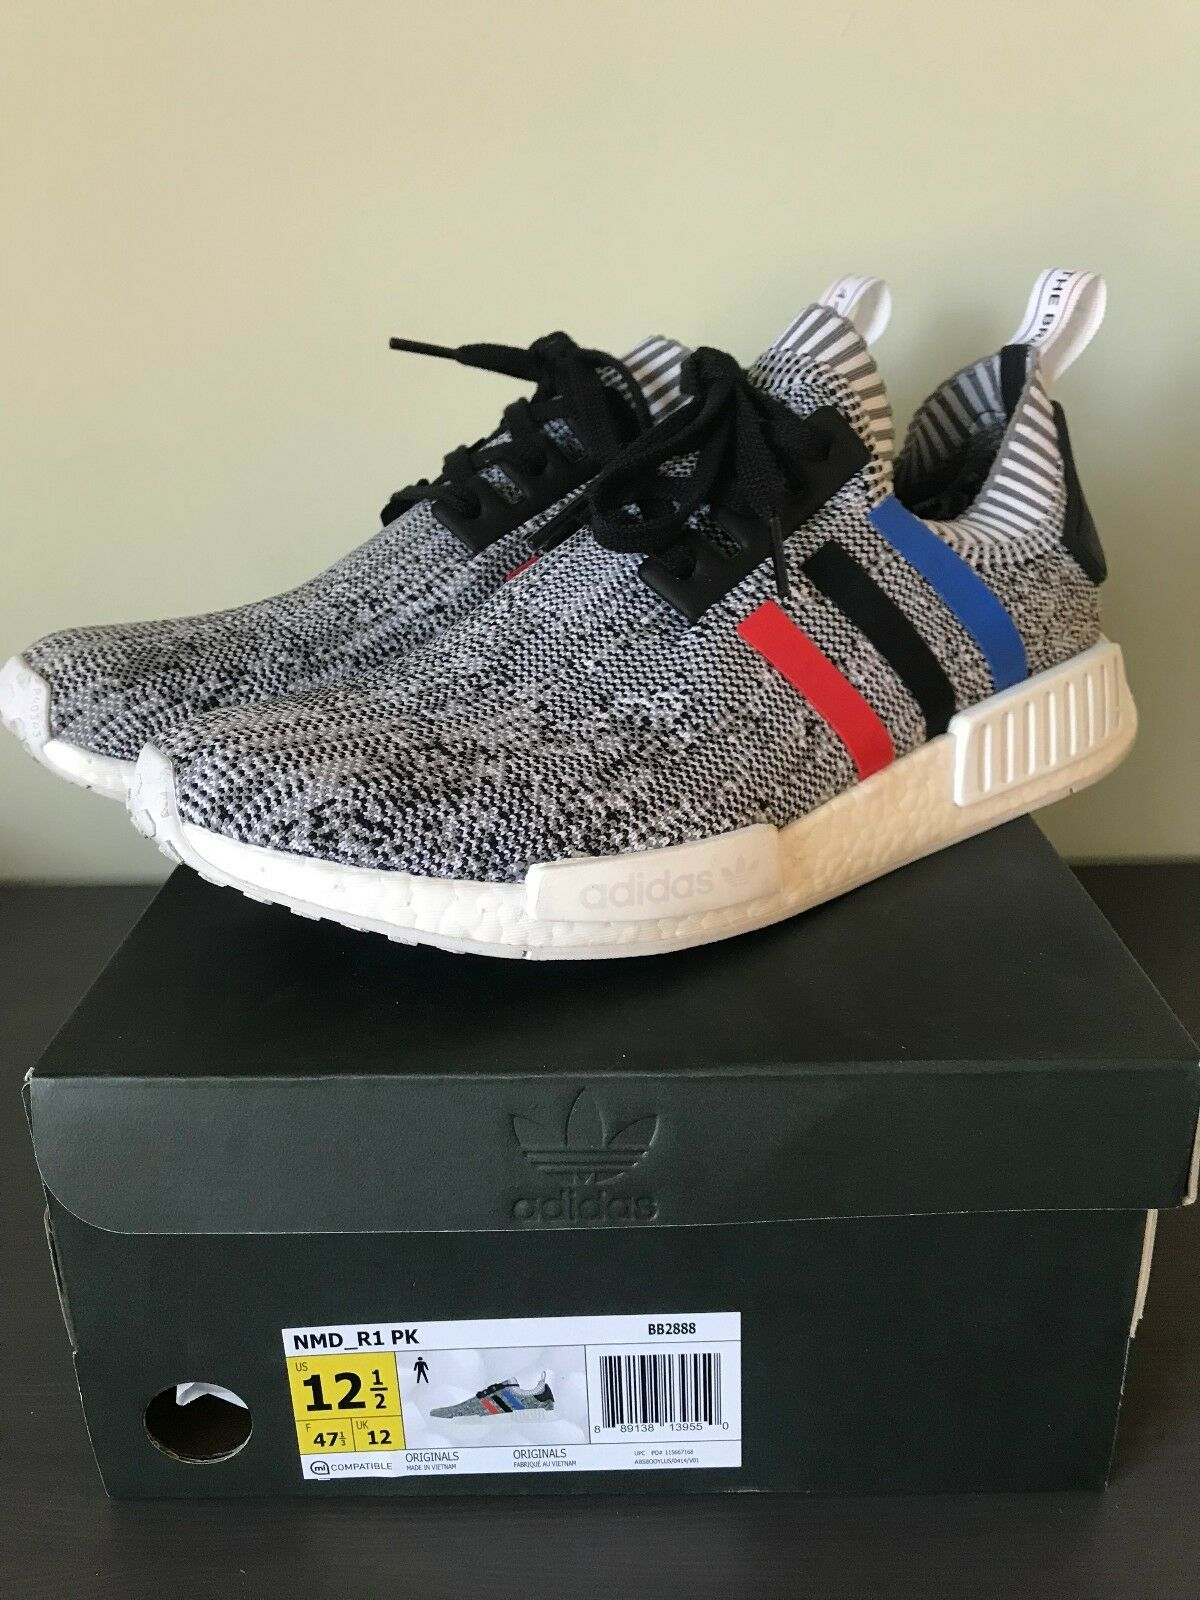 Adidas NMD R1 Primeknit Tri-Color Grey/White BB2888 SIZE 12.5 USED 9/10